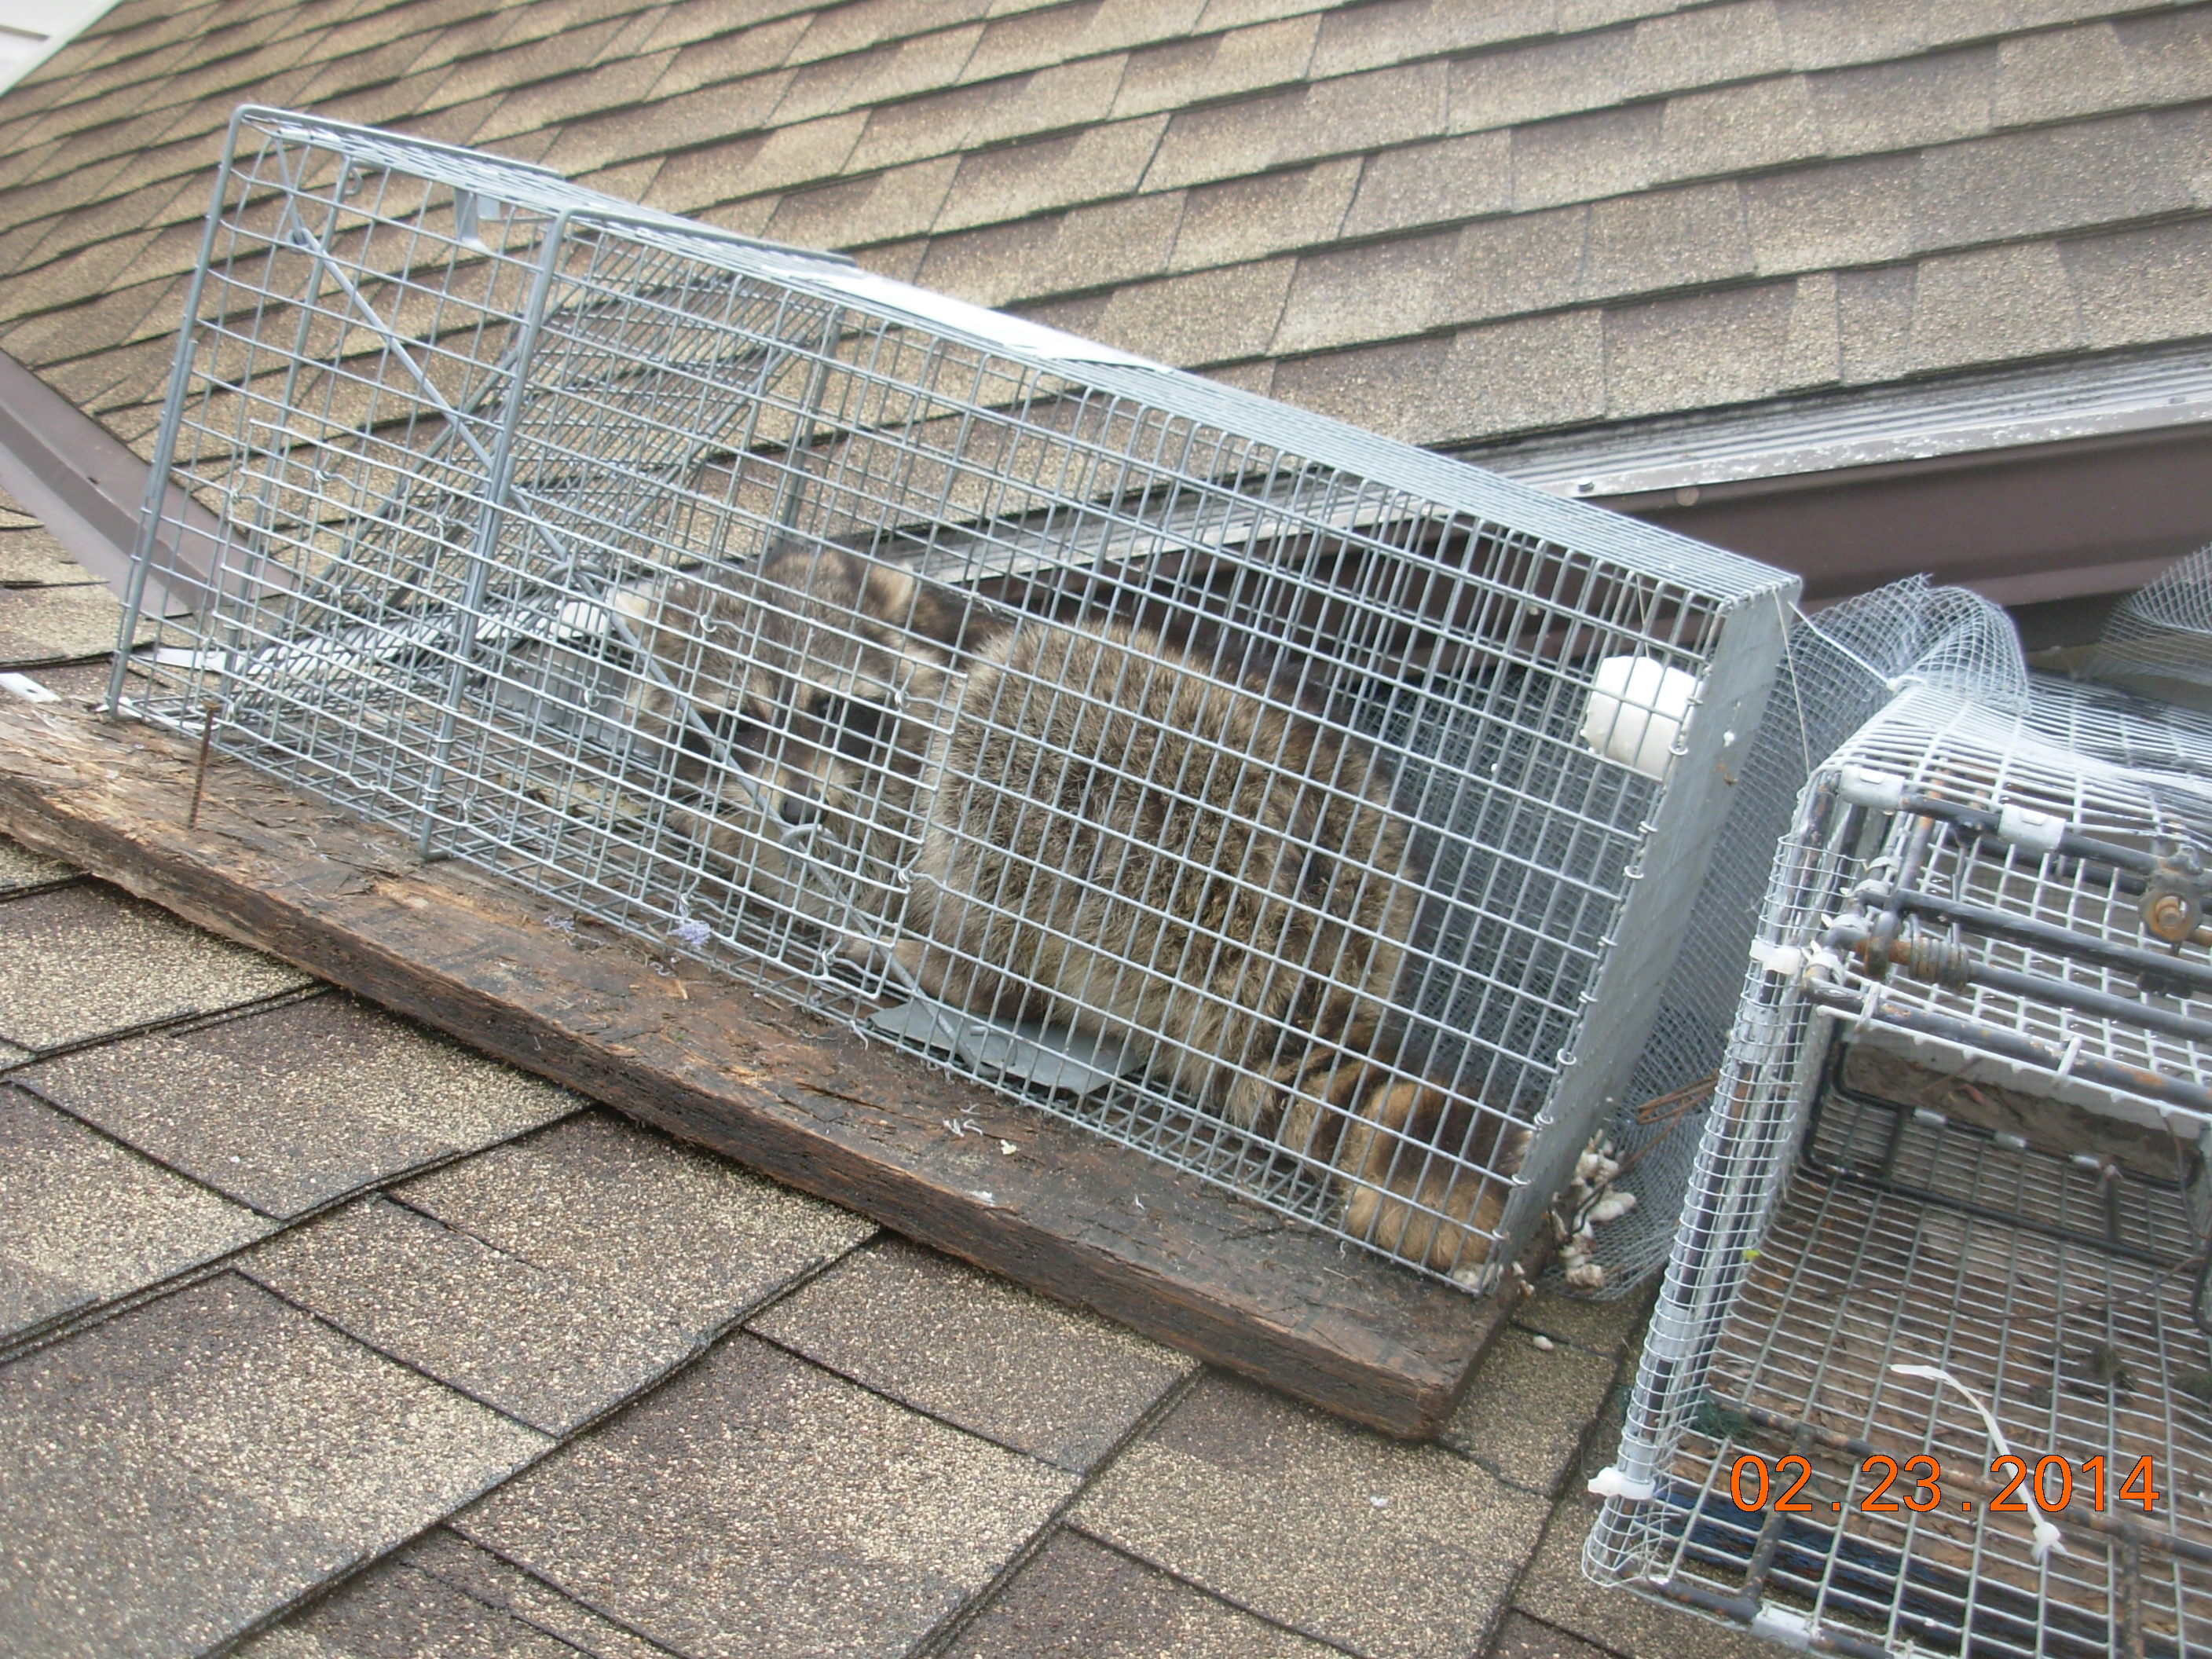 How Are Raccoons Getting Into The Attic Common Entry Points